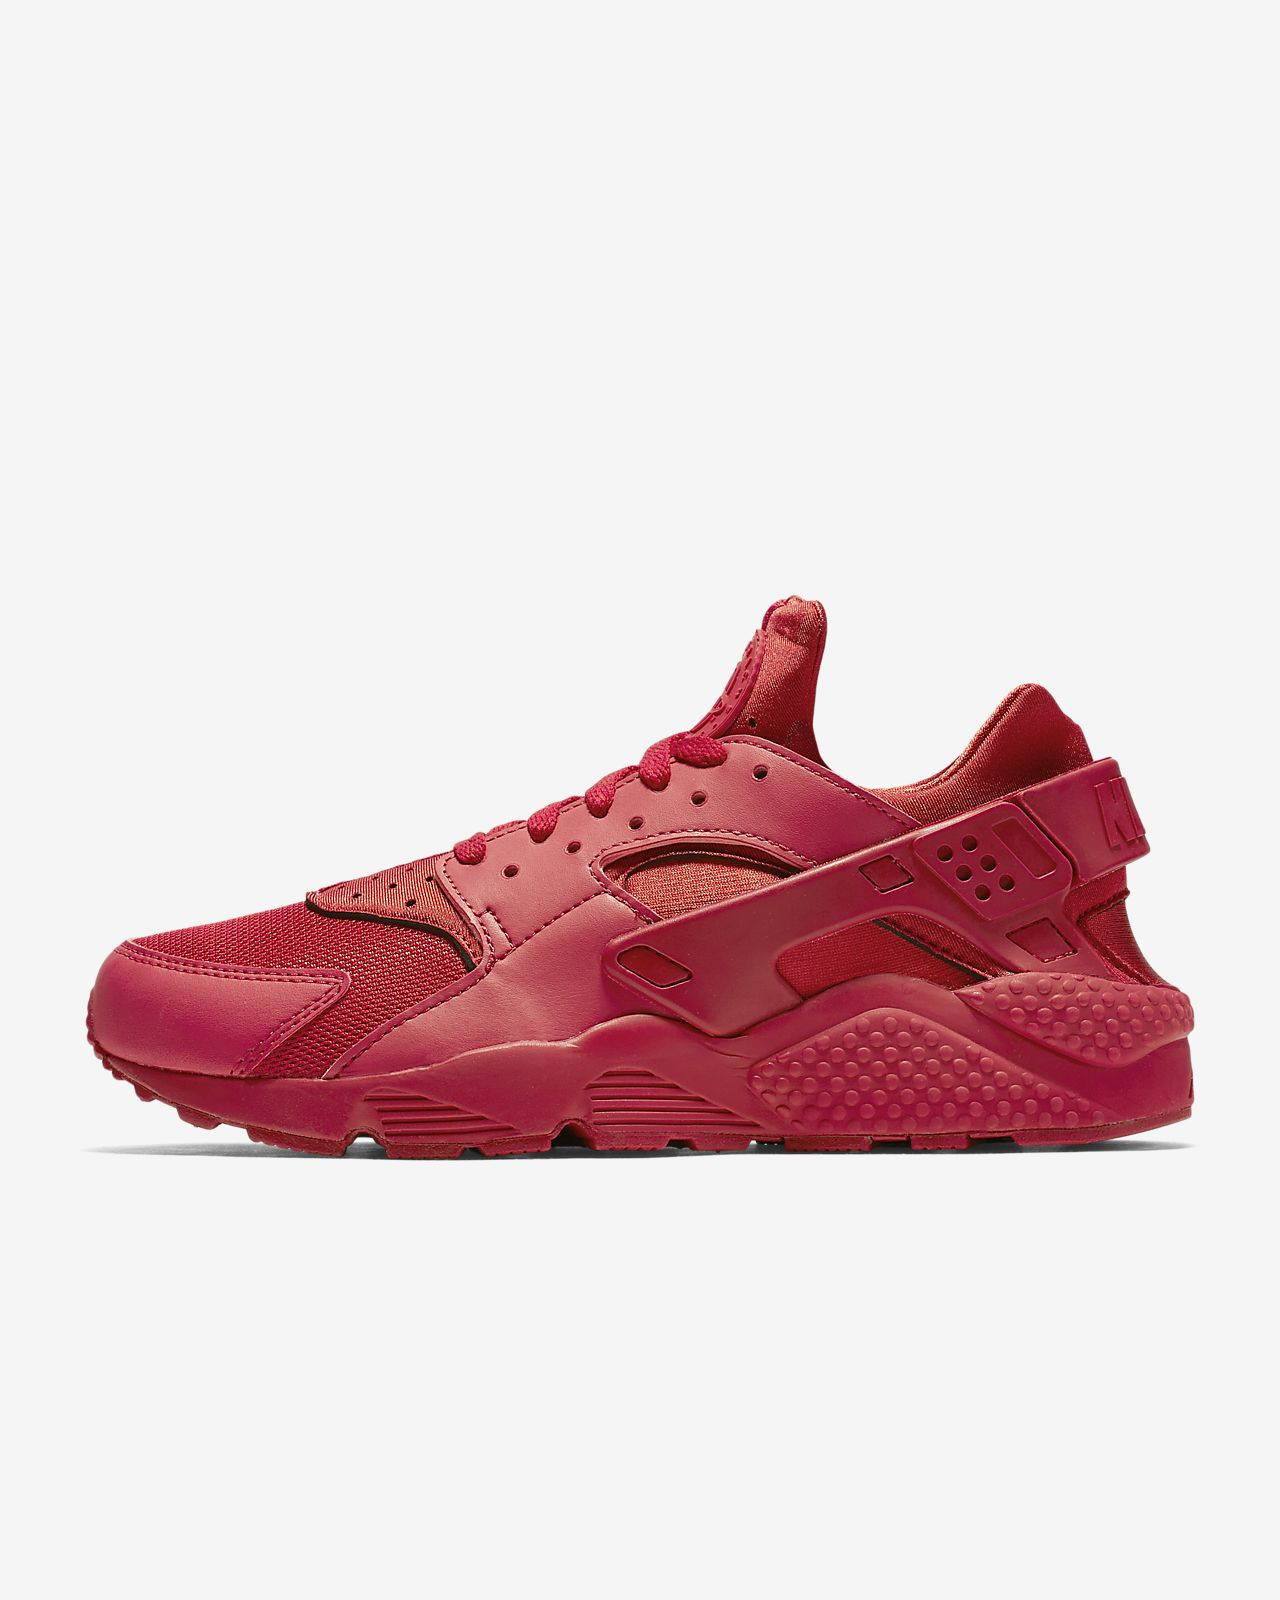 new product 44cb6 32a20 ... Nike Air Huarache Men s Shoe